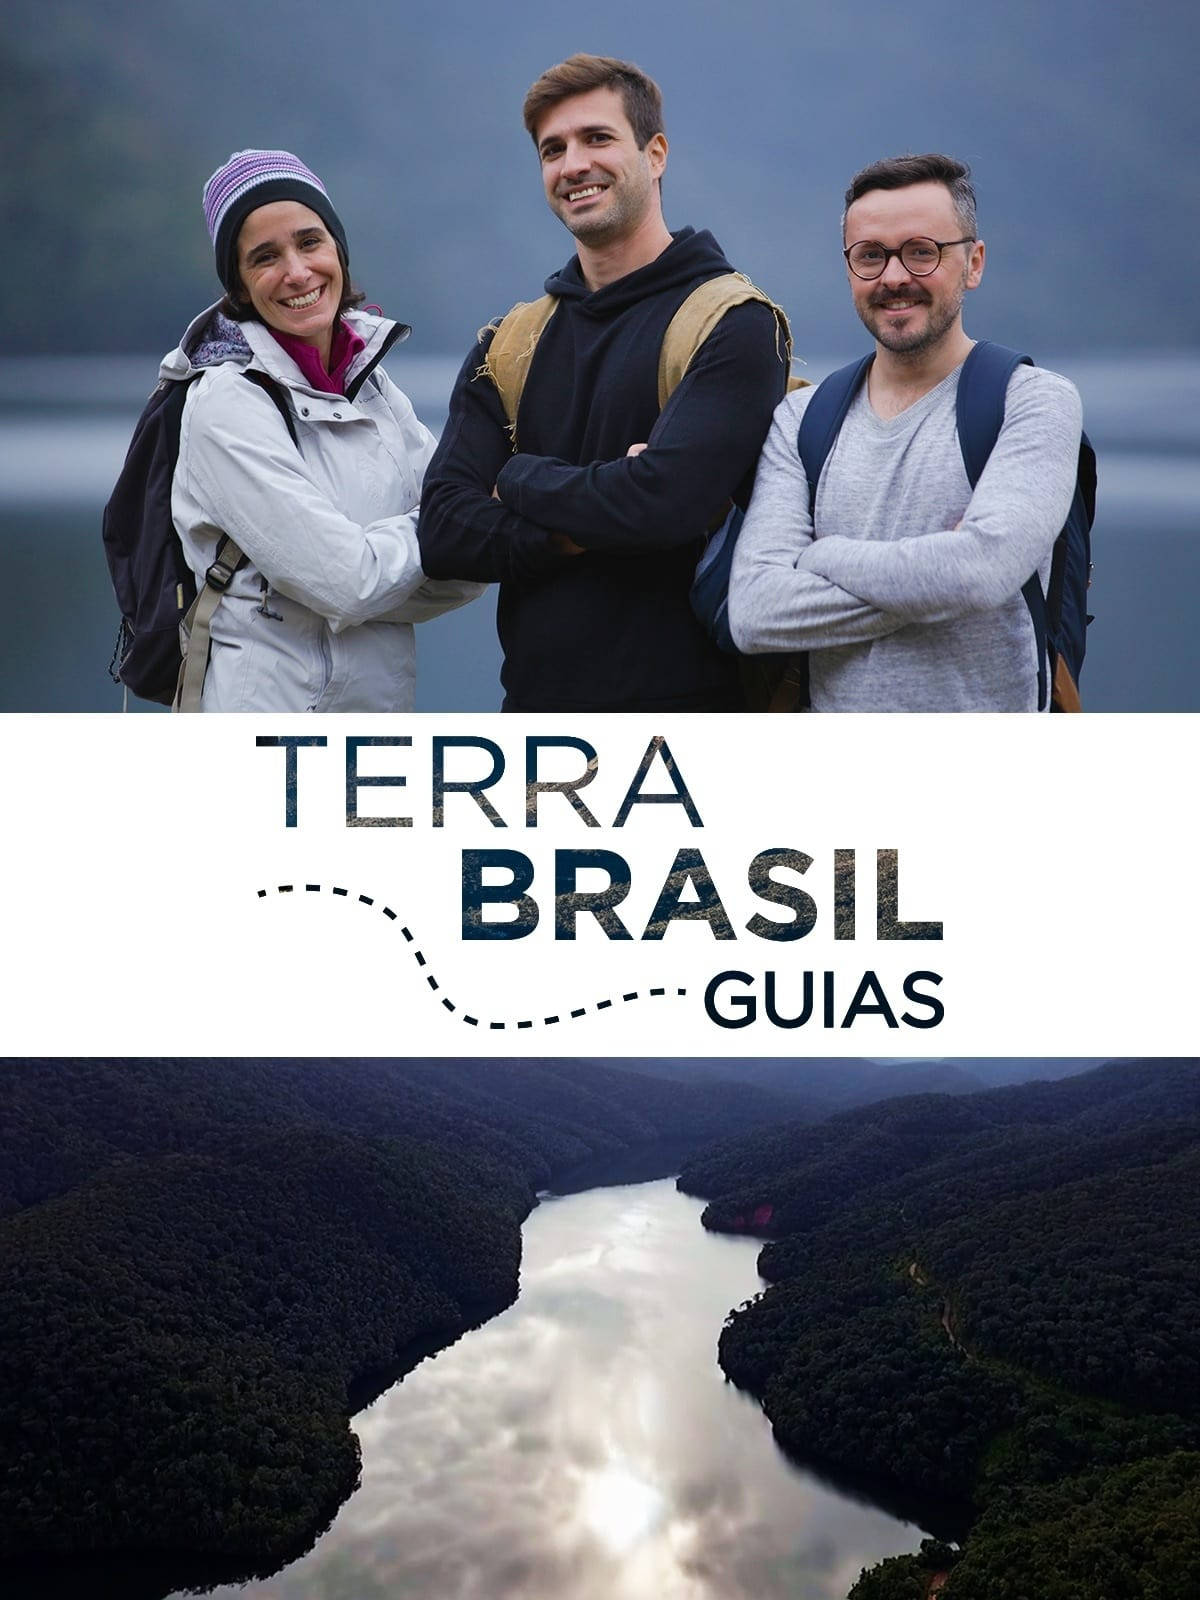 Terra Brasil - Guias TV Shows About Ecology